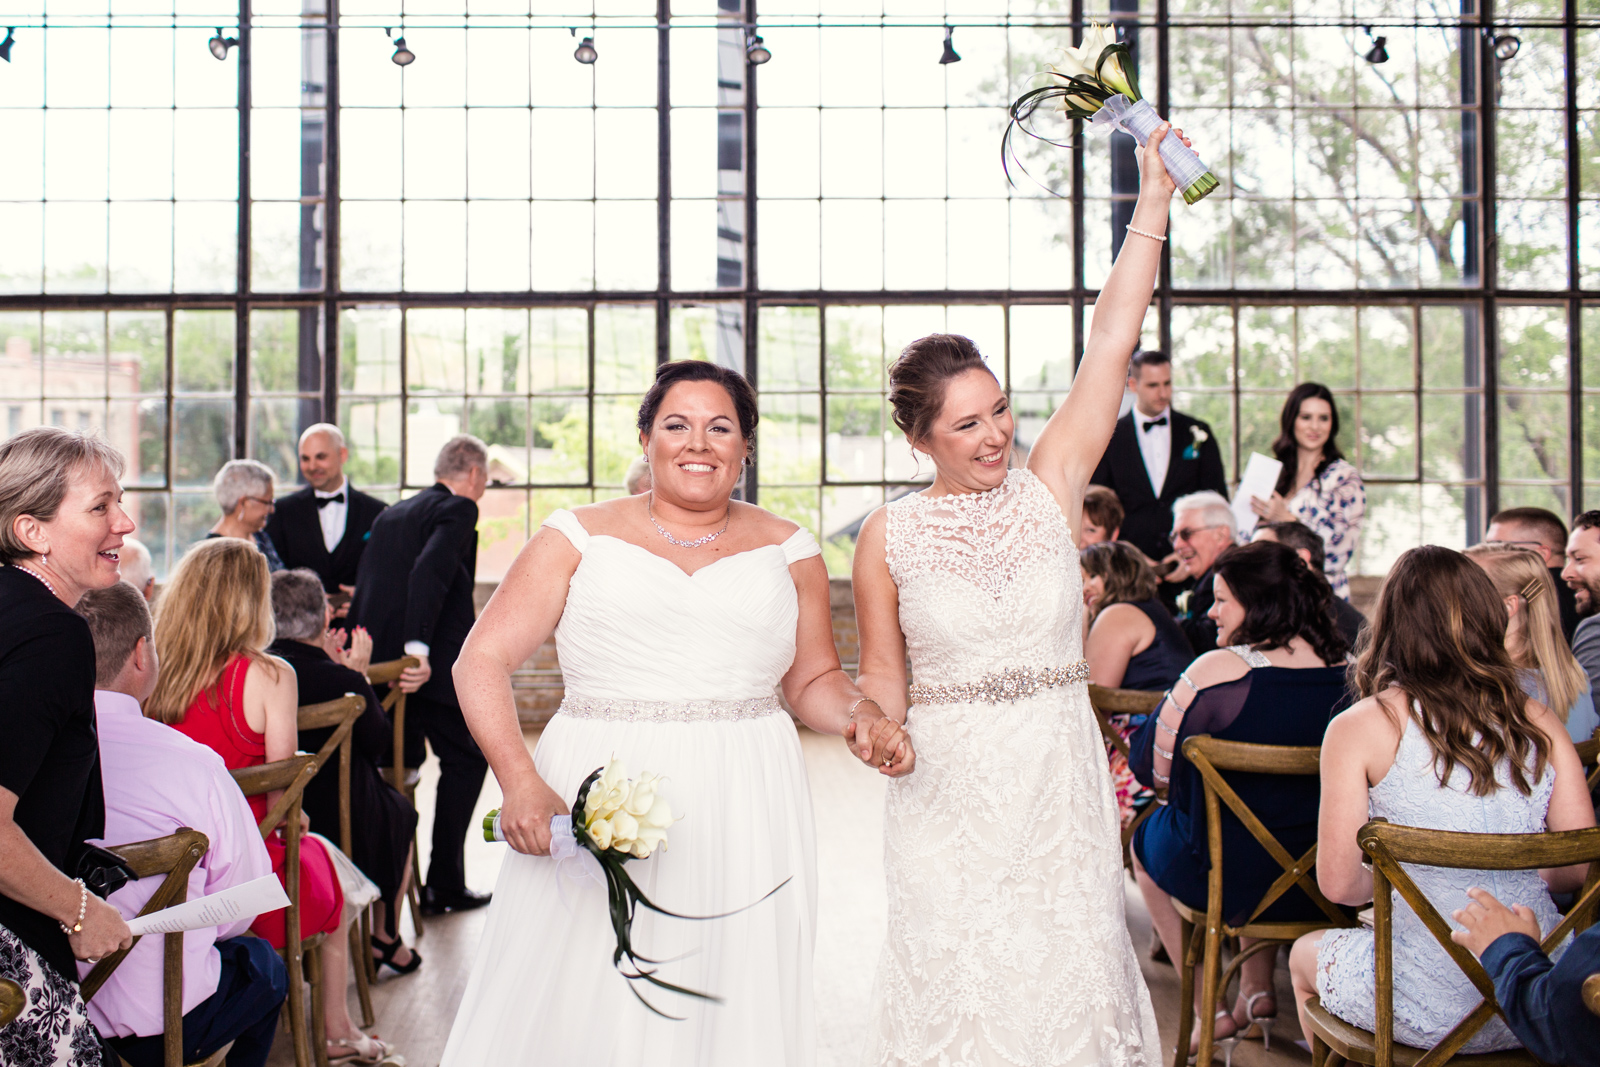 Newlywed brides at their Ravenswood Event Center wedding by Chicago documentary wedding photographer Emma Mullins Photography